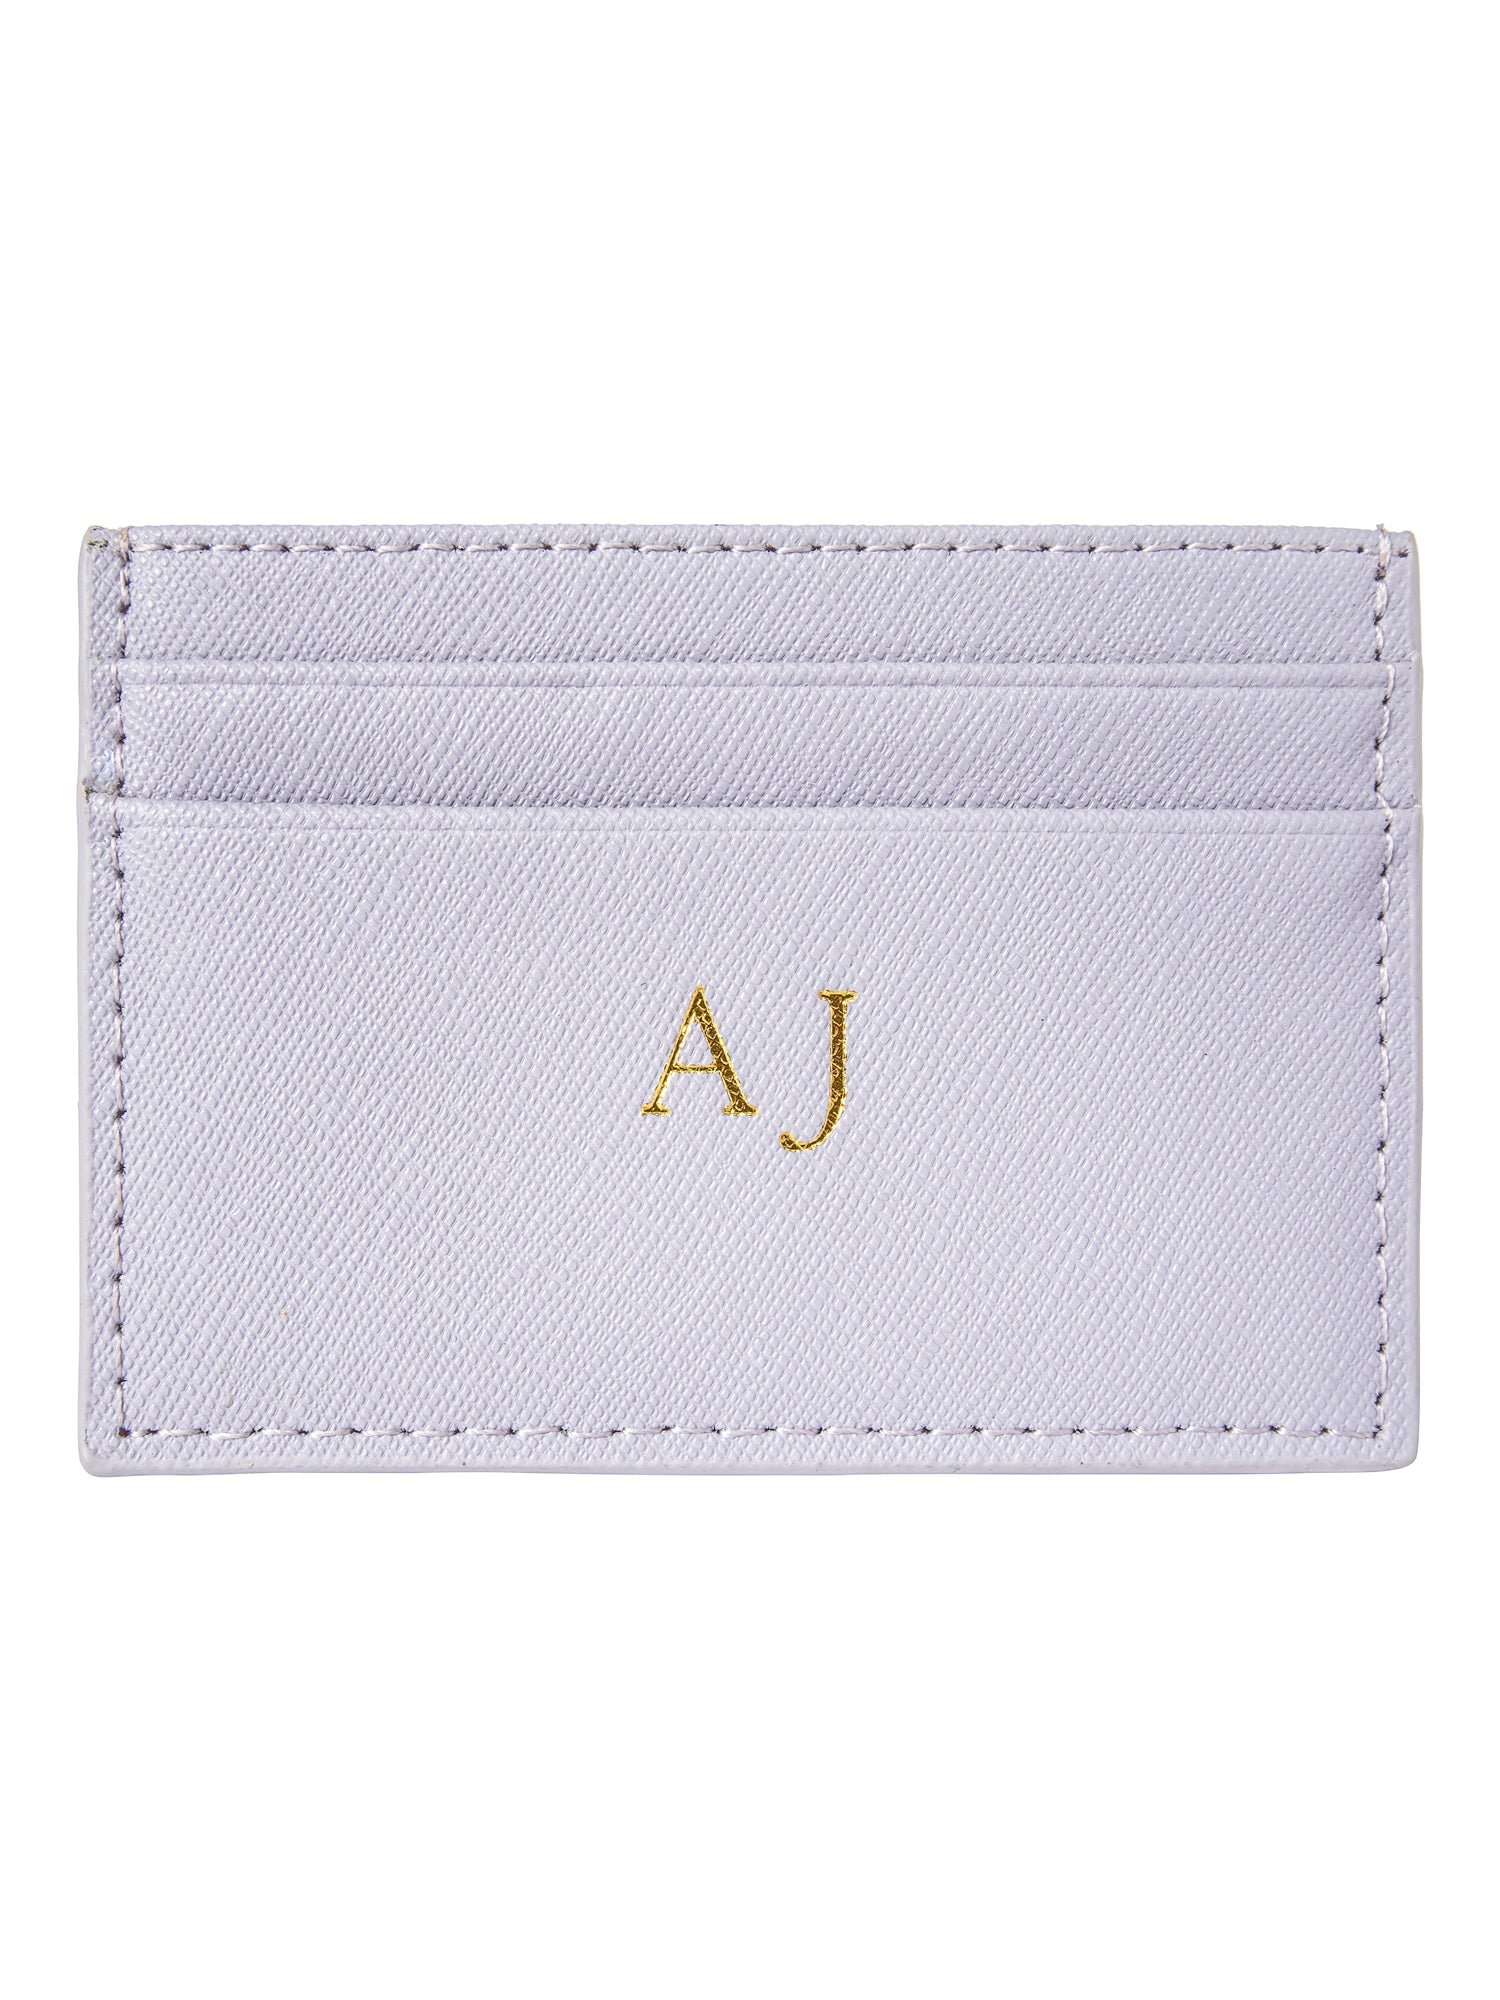 Personalized Customized Monogram Saffiano Slim Cardholder in Lavender The Oak Bar Singapore